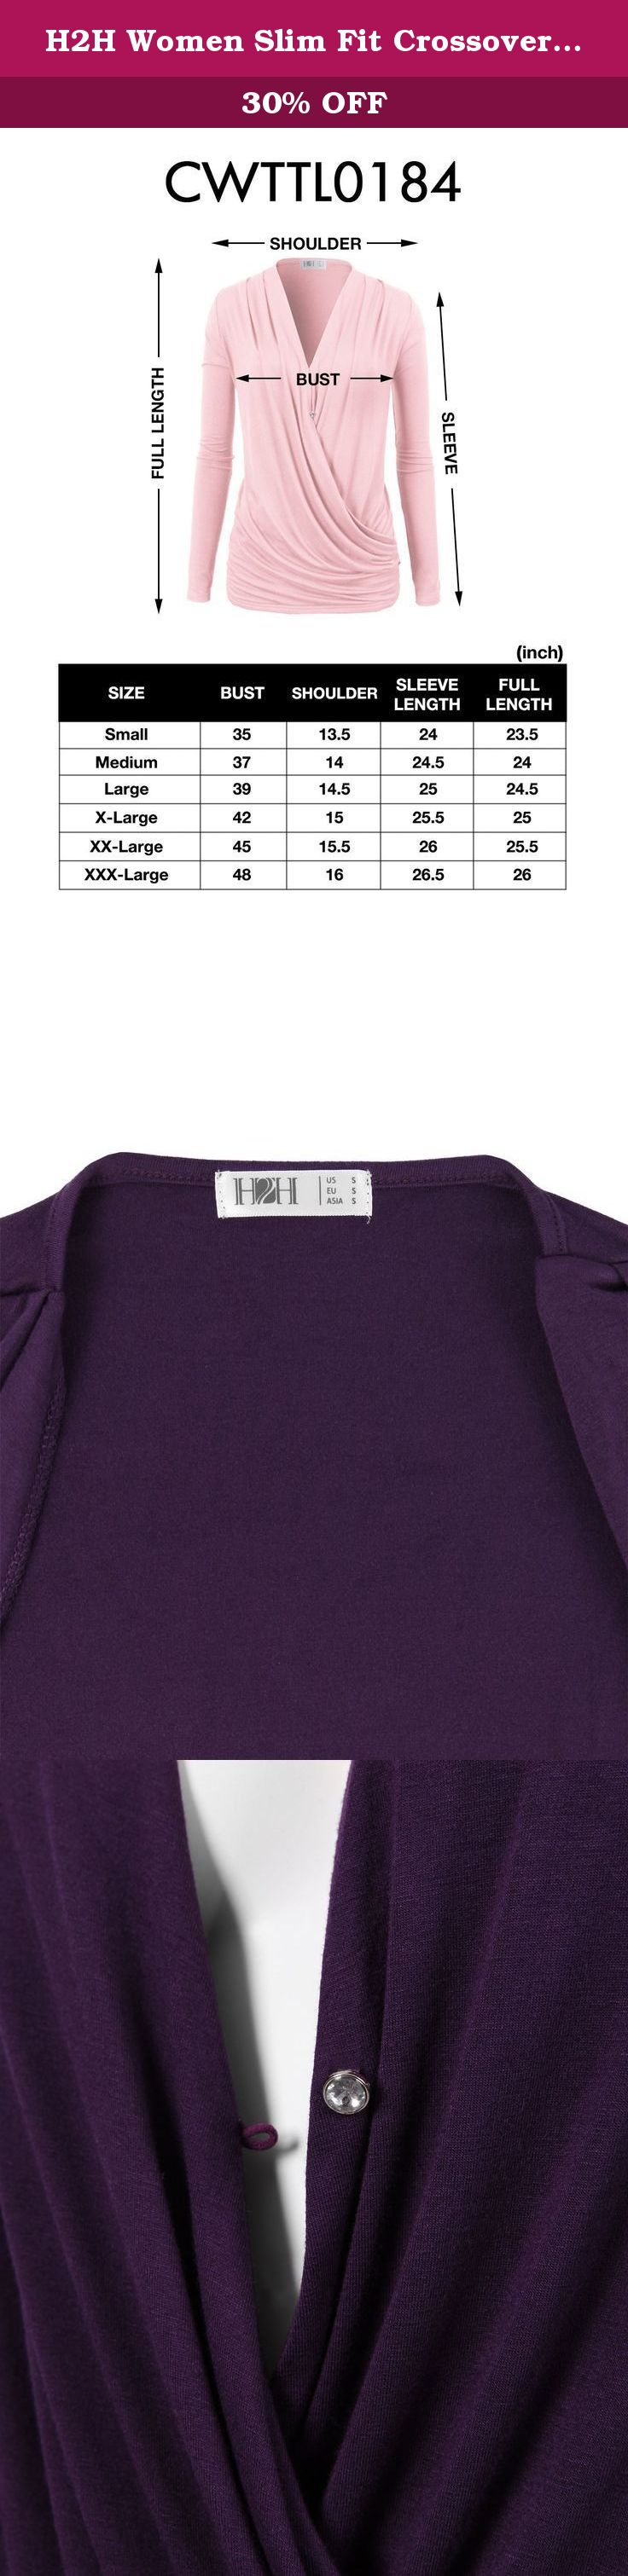 H2H Women Slim Fit Crossover V-neck Ruched Long Sleeve Blouse With Solid Colors PURPLE US L/Asia L (CWTTL0184). This is a highly recommended H2H style blouse t-shirts, comfortable, soft skin friendly, and relaxed silhouette. Good of brand H2H process high quality fabric and fine workmanship. And we have rich offer. *Womens Cross-front V-neck Ruched Long Sleeve Blouse Top compact and casual everyday piece of statement. *It is good a great gift for your best friend, significant other, or...